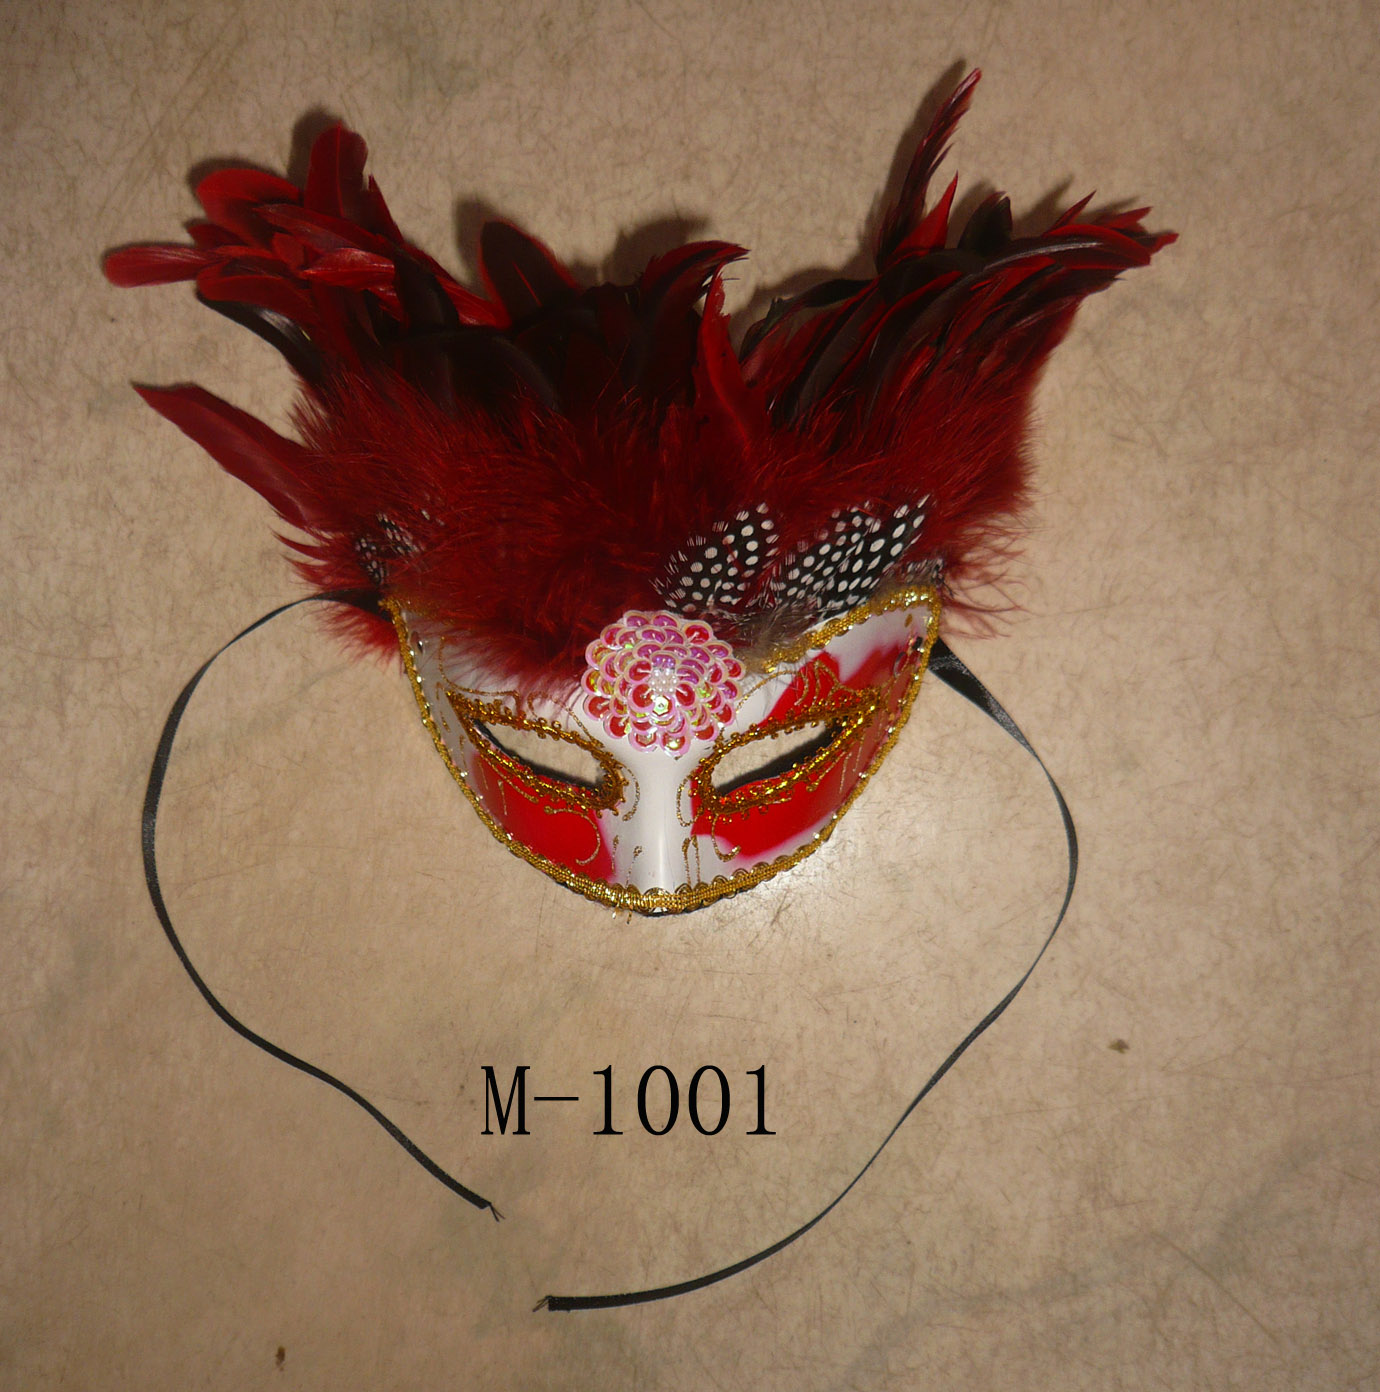 Cheap feather masks for sale - Made in China M-1001